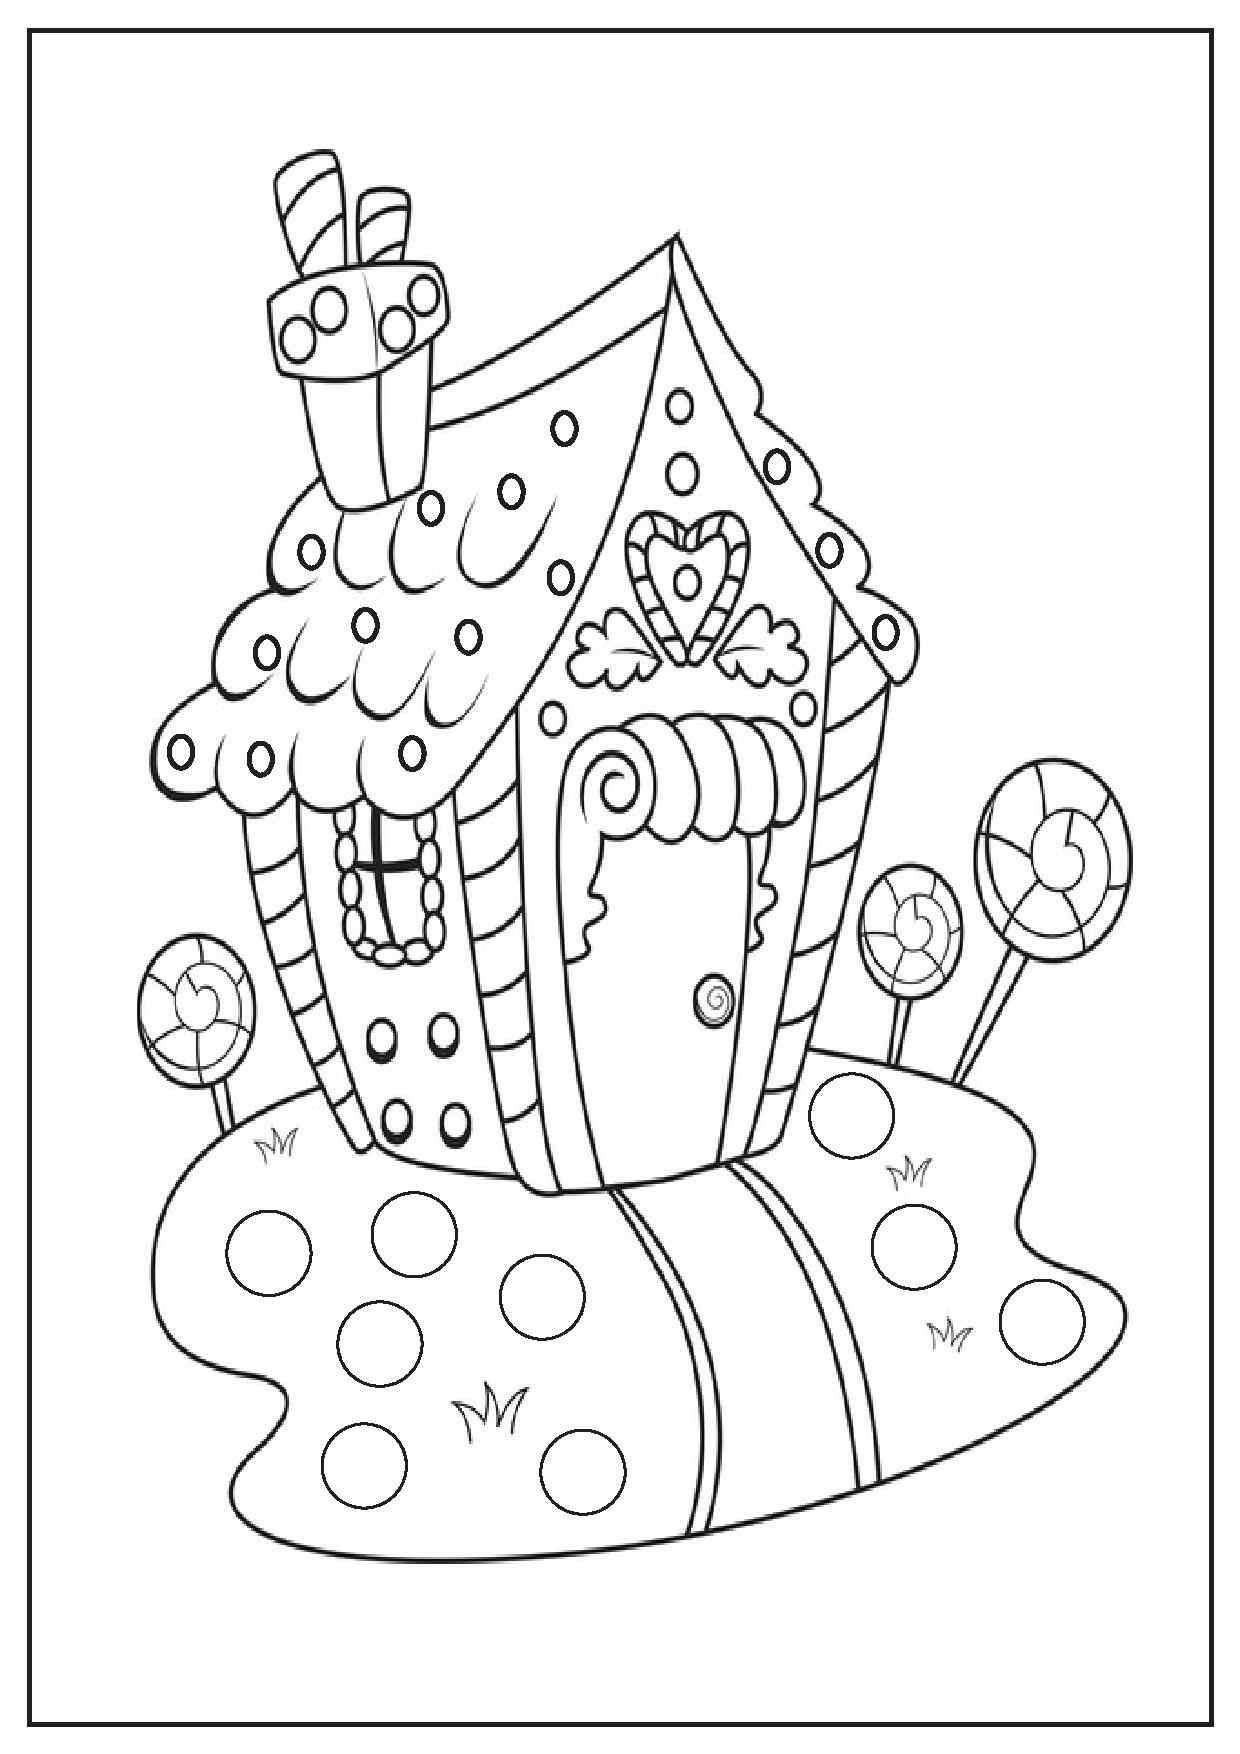 kindergarten coloring sheets | Only Coloring Pages | coloring ...